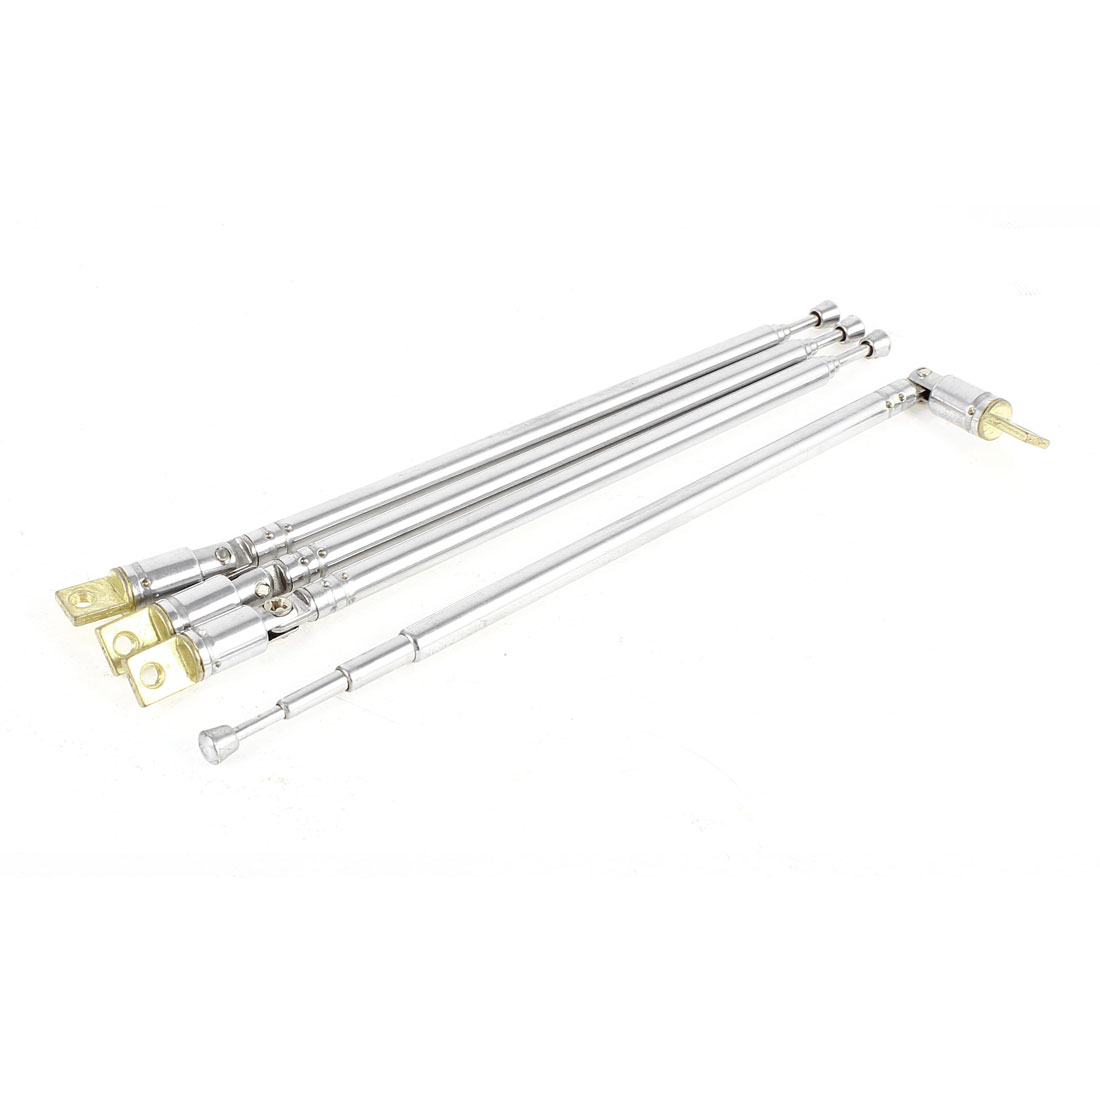 4 Pcs Silver Tone 4 Sections Rotating TV Telescopic Antenna Aerial 38.5cm for Car